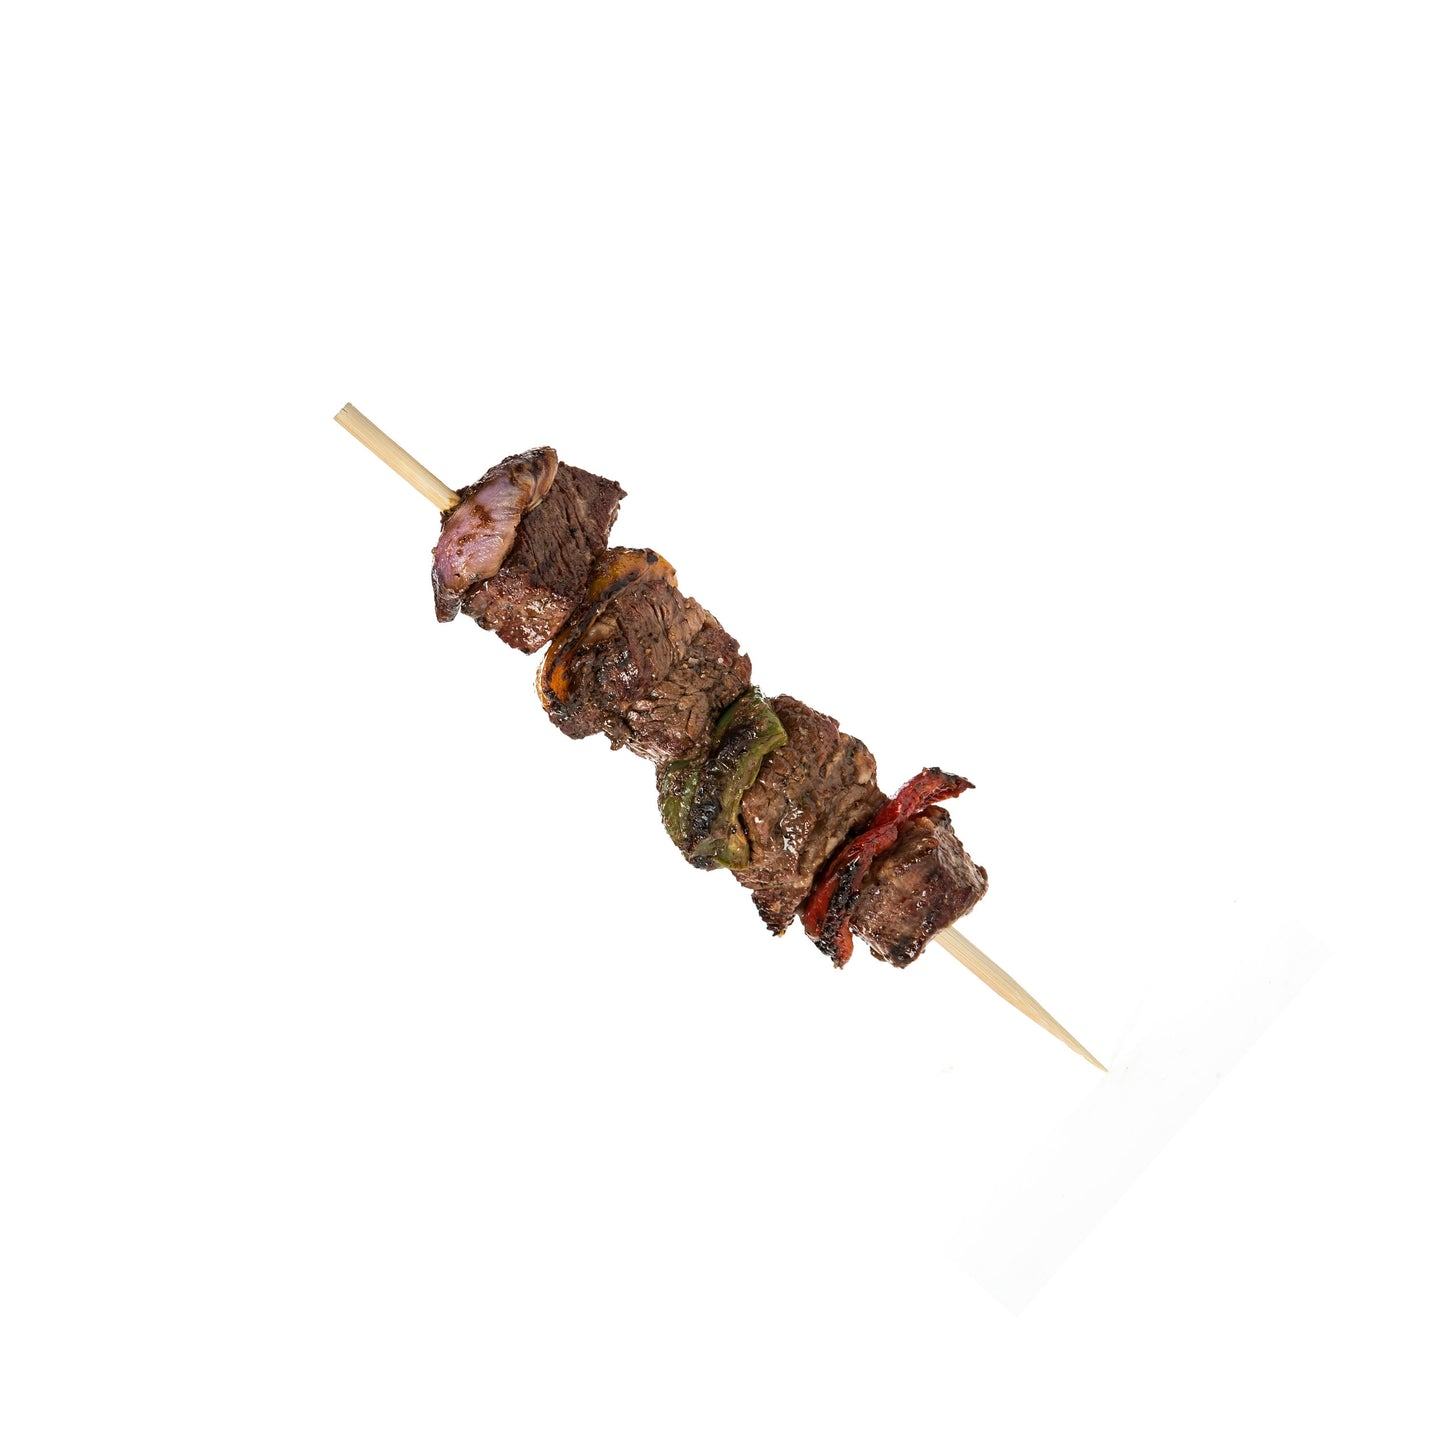 wooden bamboo skewer for barbeque and different kinds of meat. Perfect for outdoor parties and event celebrations.